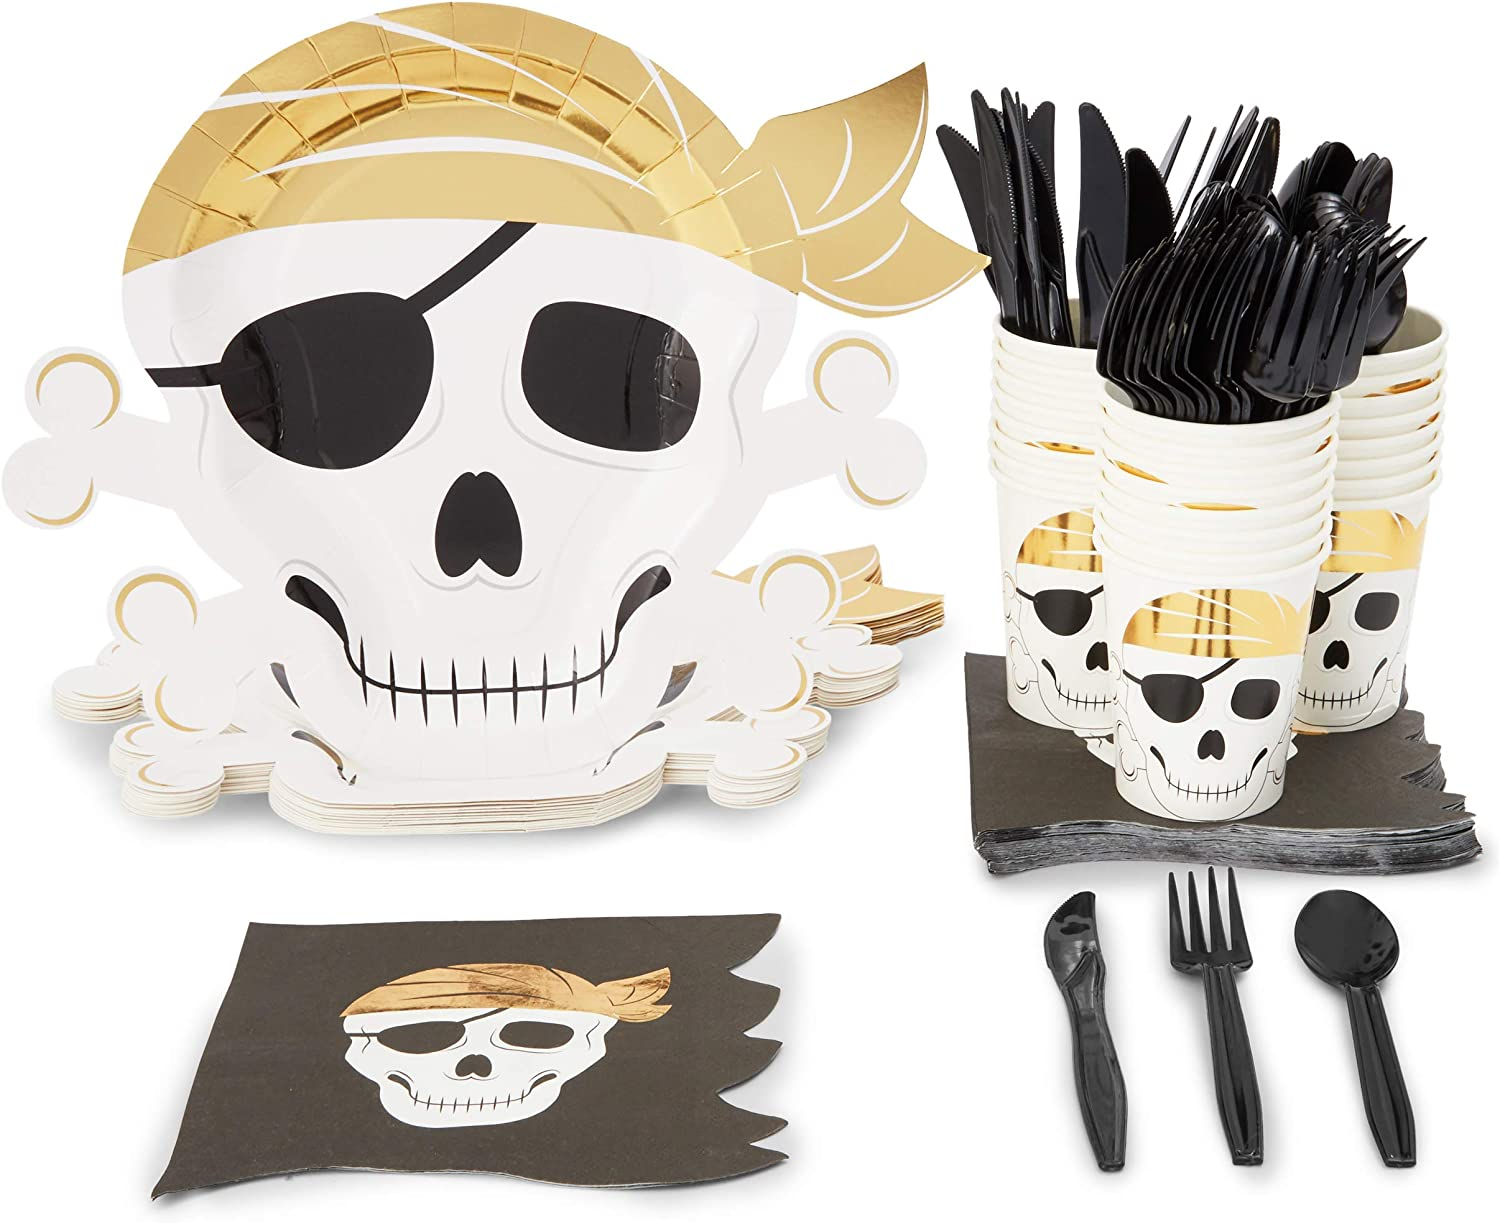 Pirate Party Pack, Includes Plates, Napkins, Cups, and Cutlery (Serves 24, 144 Pieces)